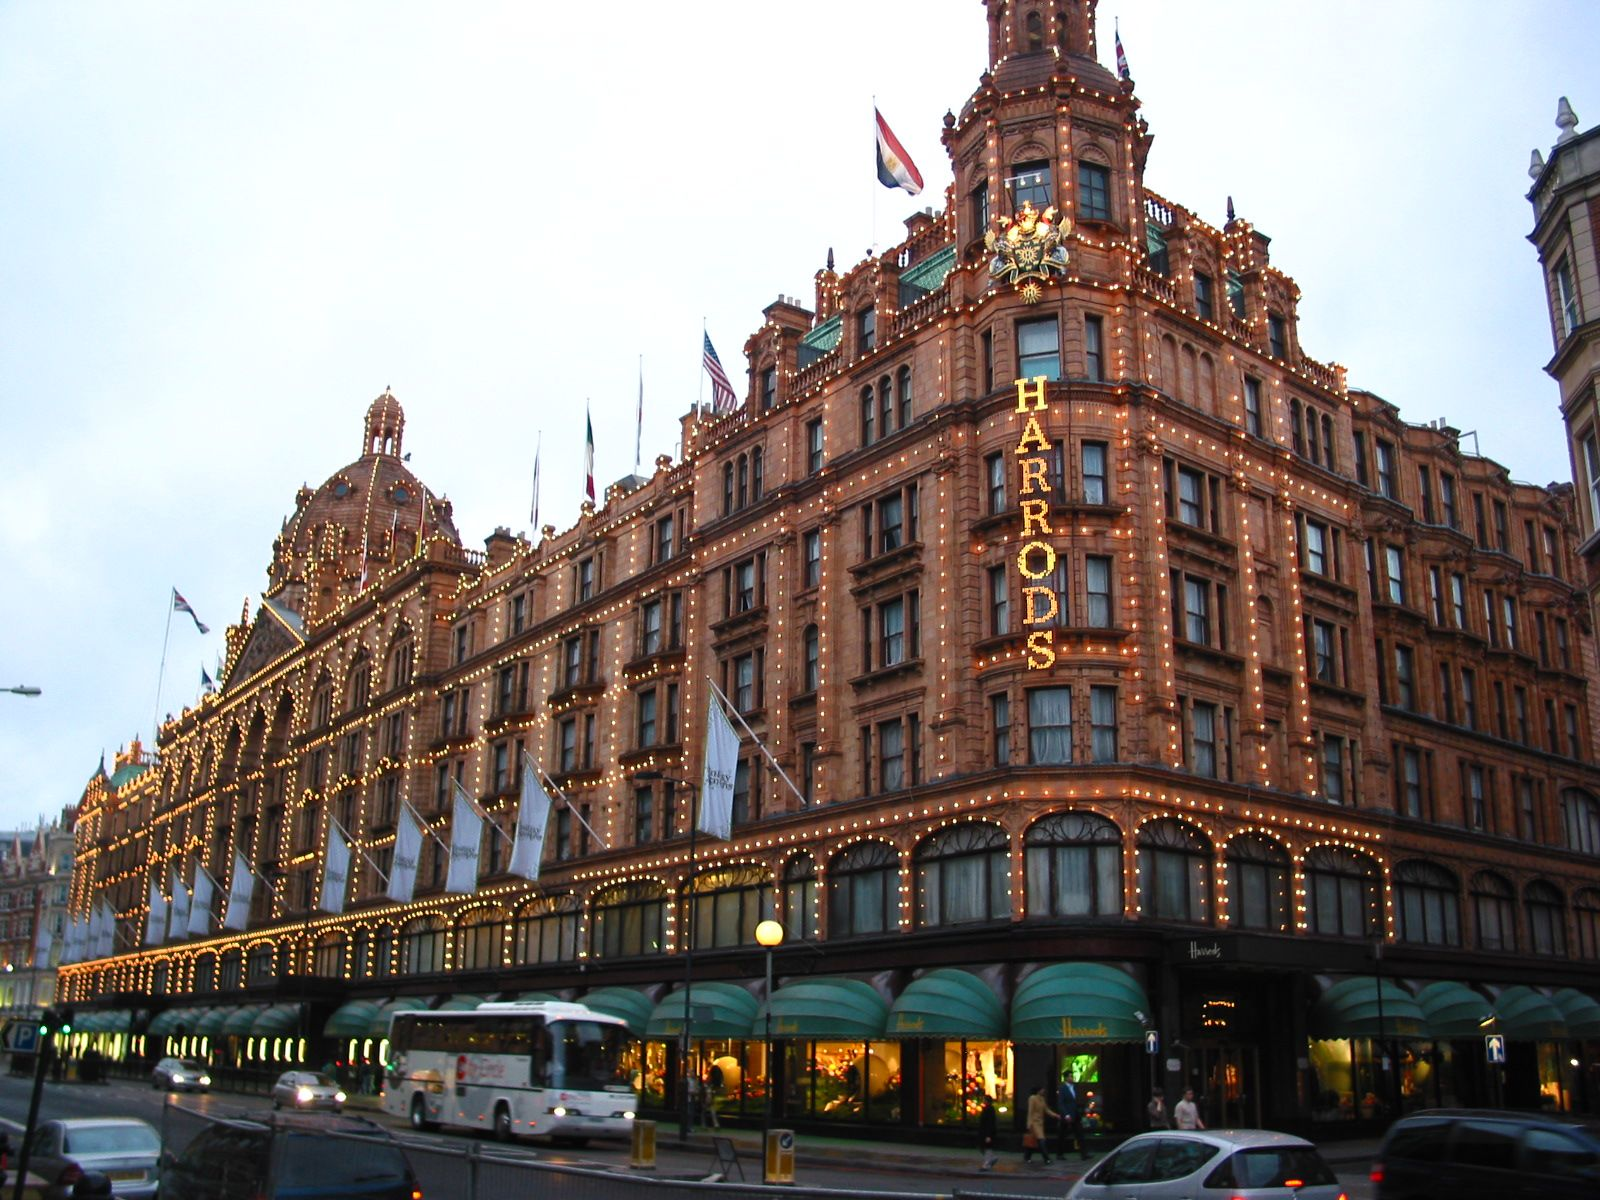 Harrods - Shopping Mall in London - Thousand Wonders